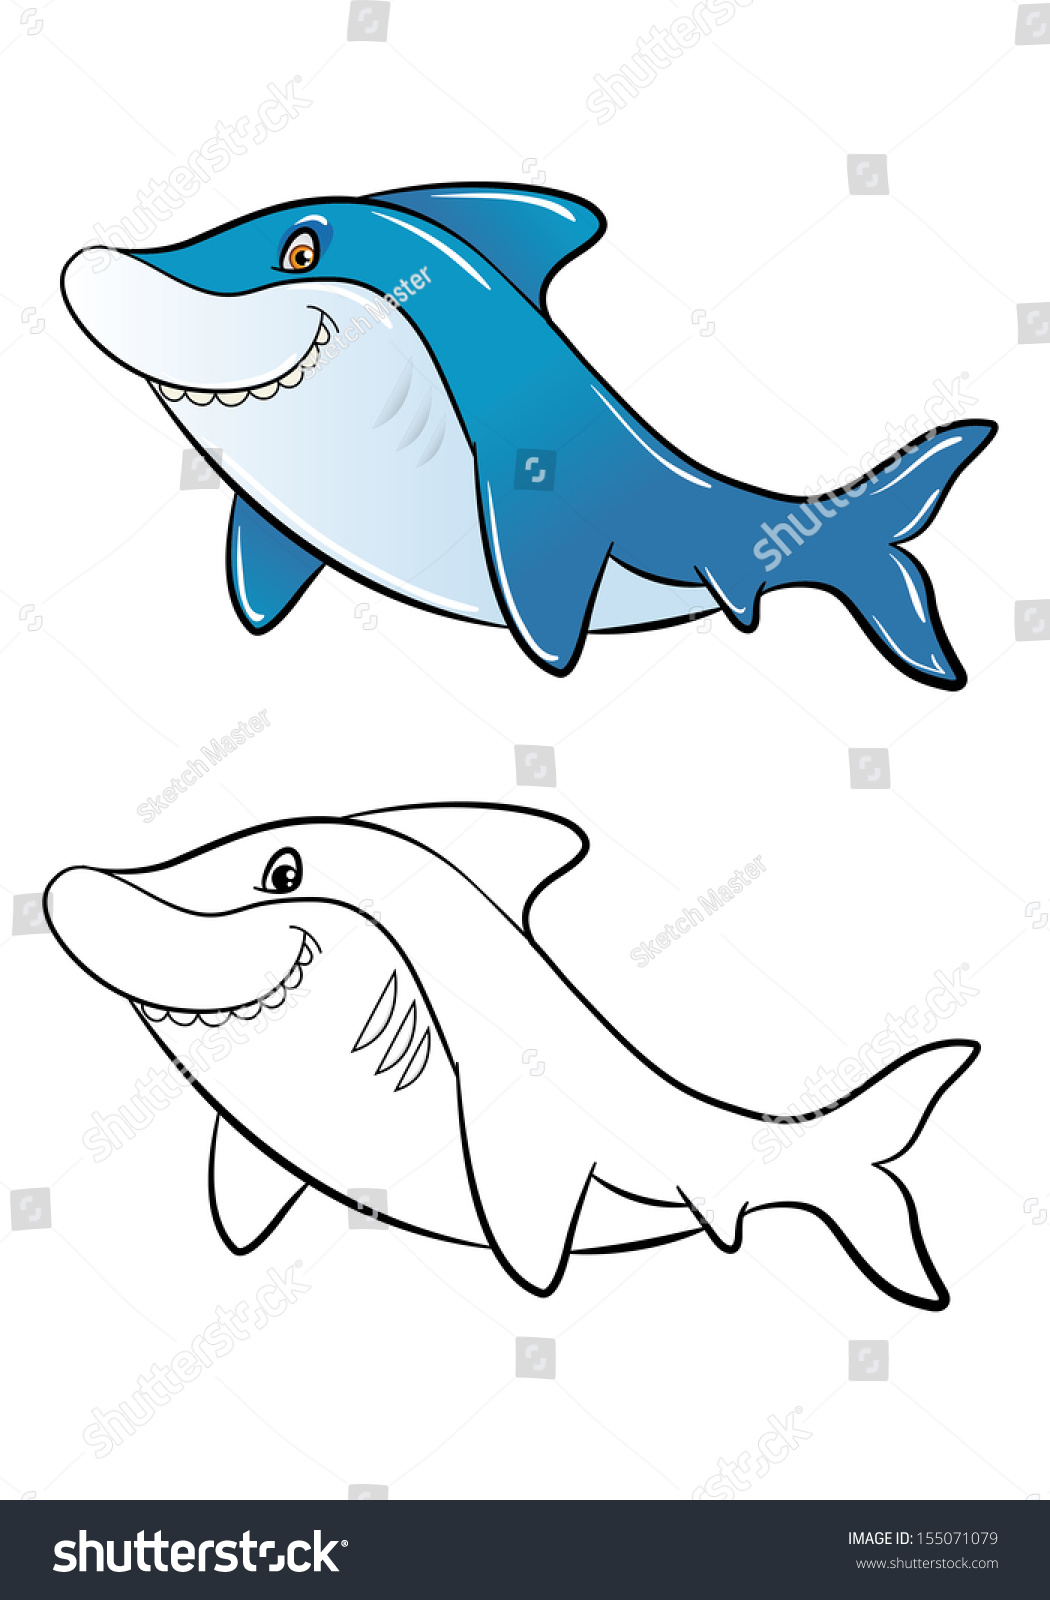 Funny Cartoon Shark Color Outline Coloring Stock Illustration ...